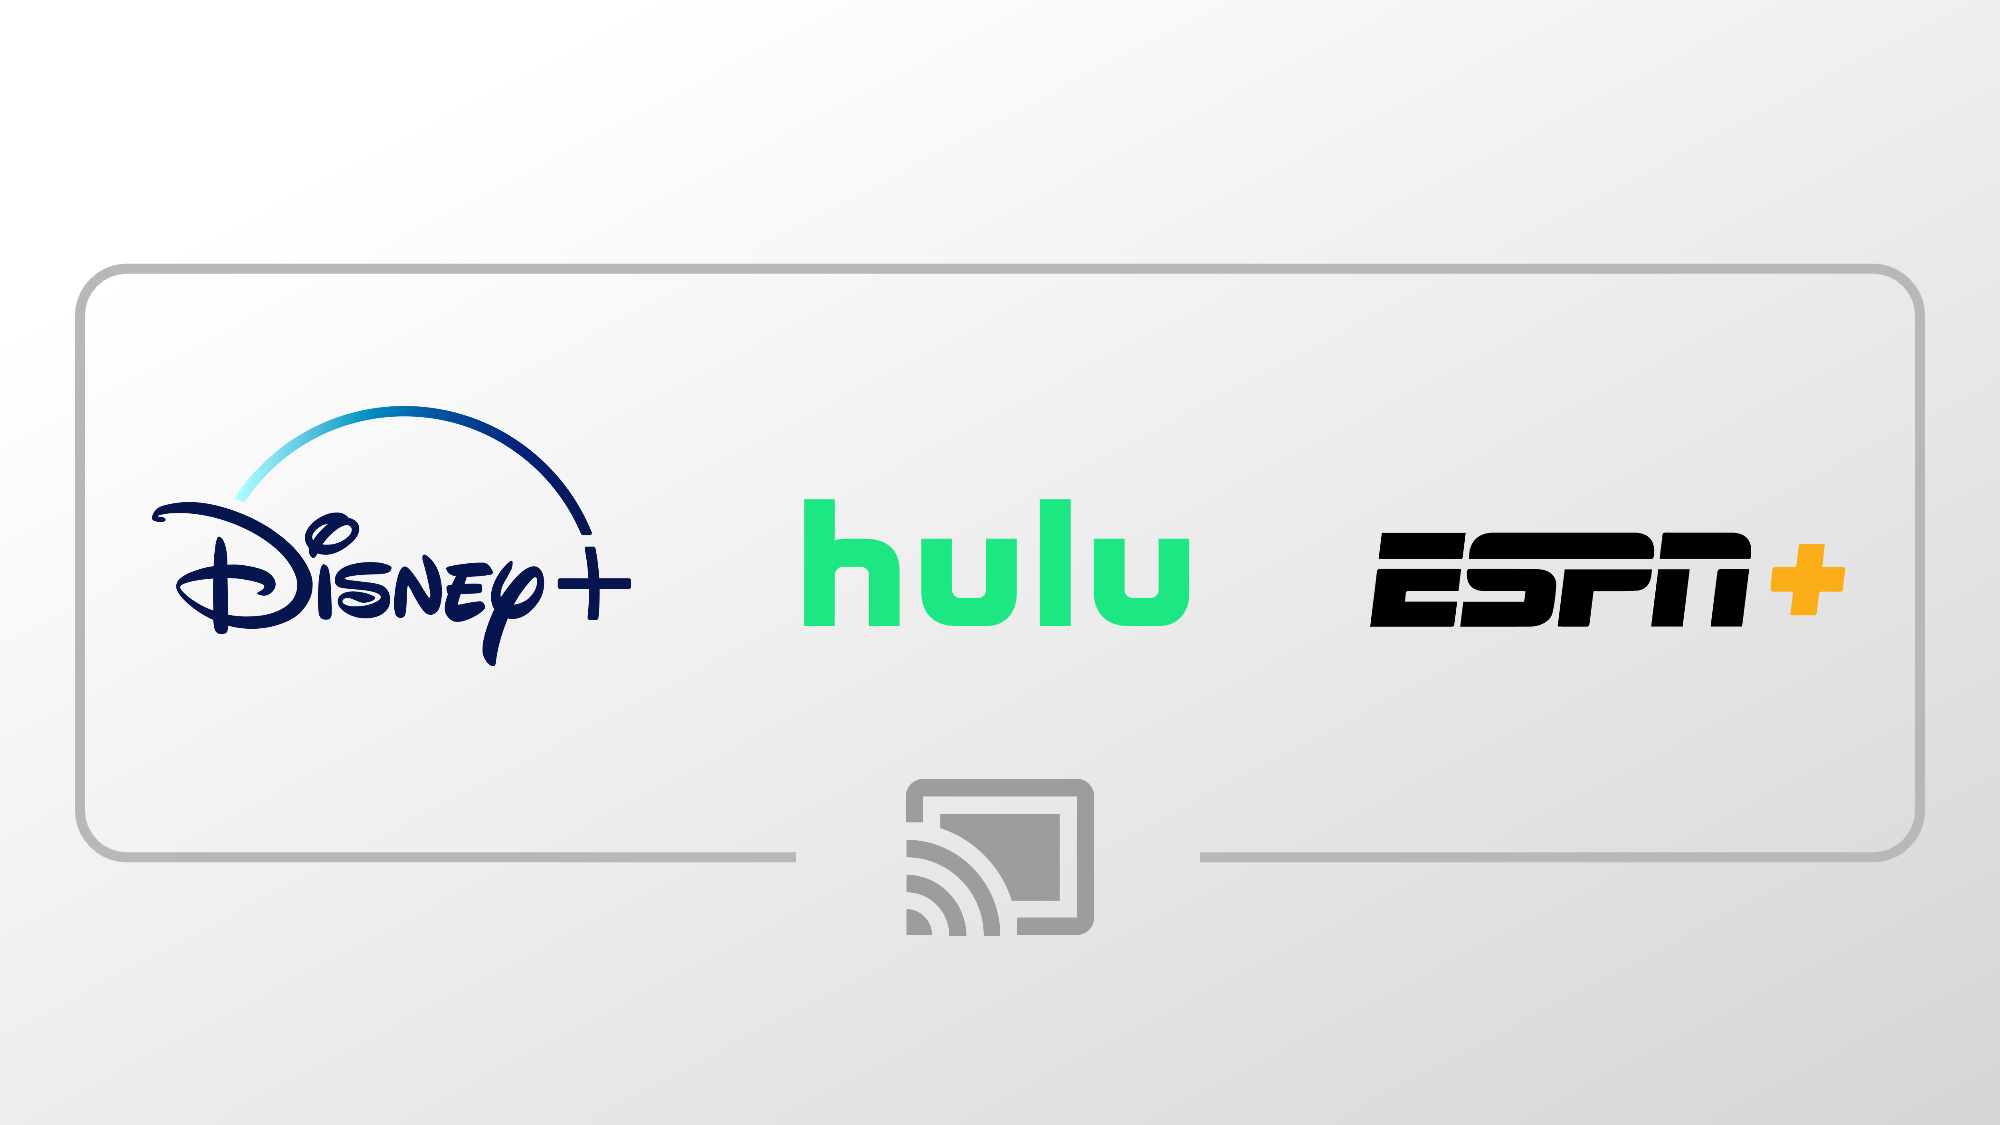 Disney+ bundle with Hulu & ESPN+ a huge win for Chromecast users